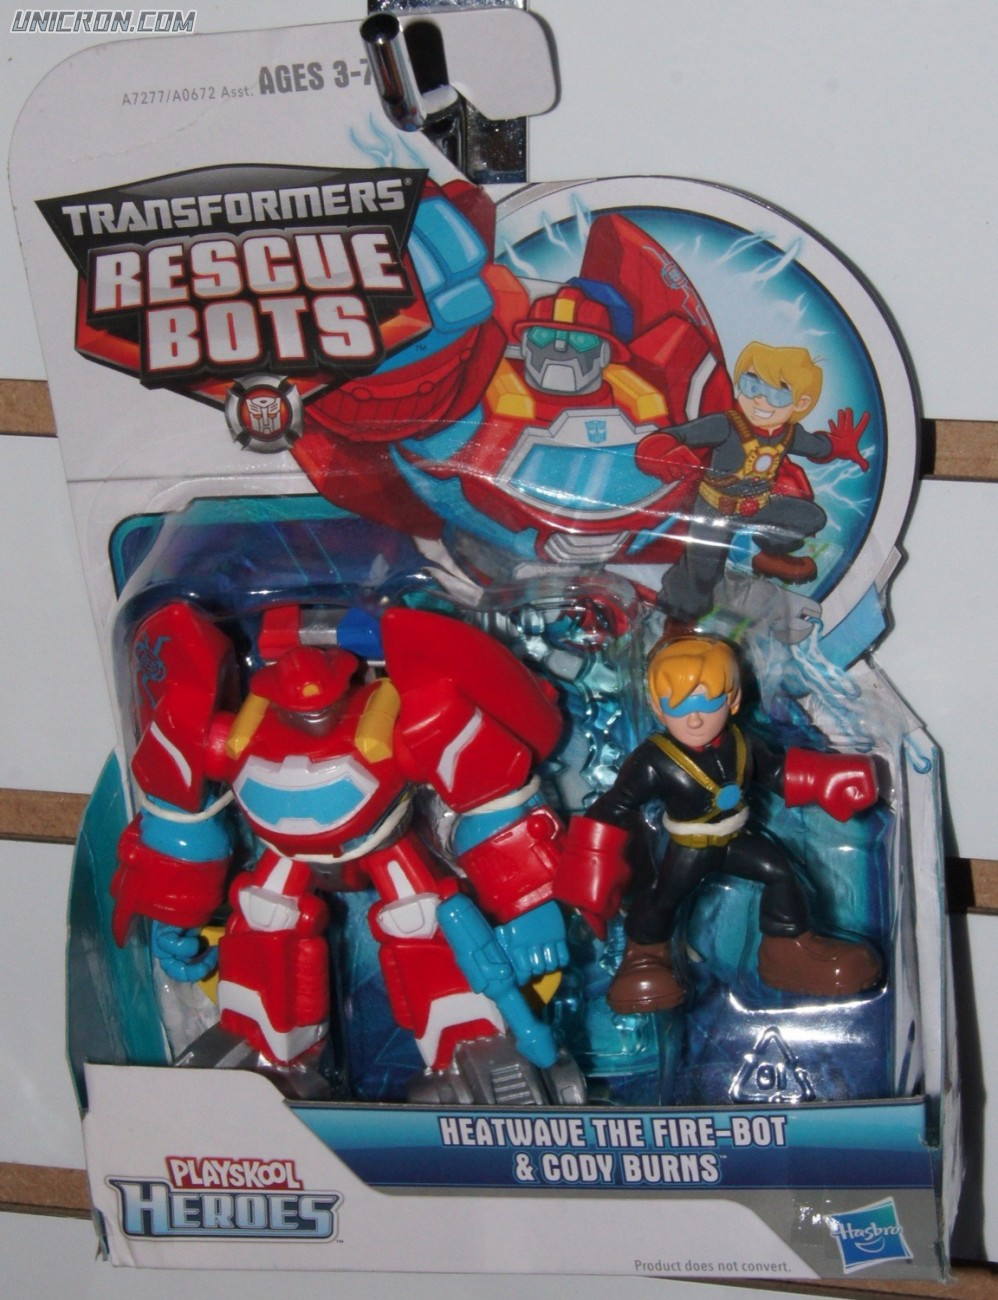 Transformers Rescue Bots Heatwave and Cody Burns (Rescue Bots 2-Pack) toy